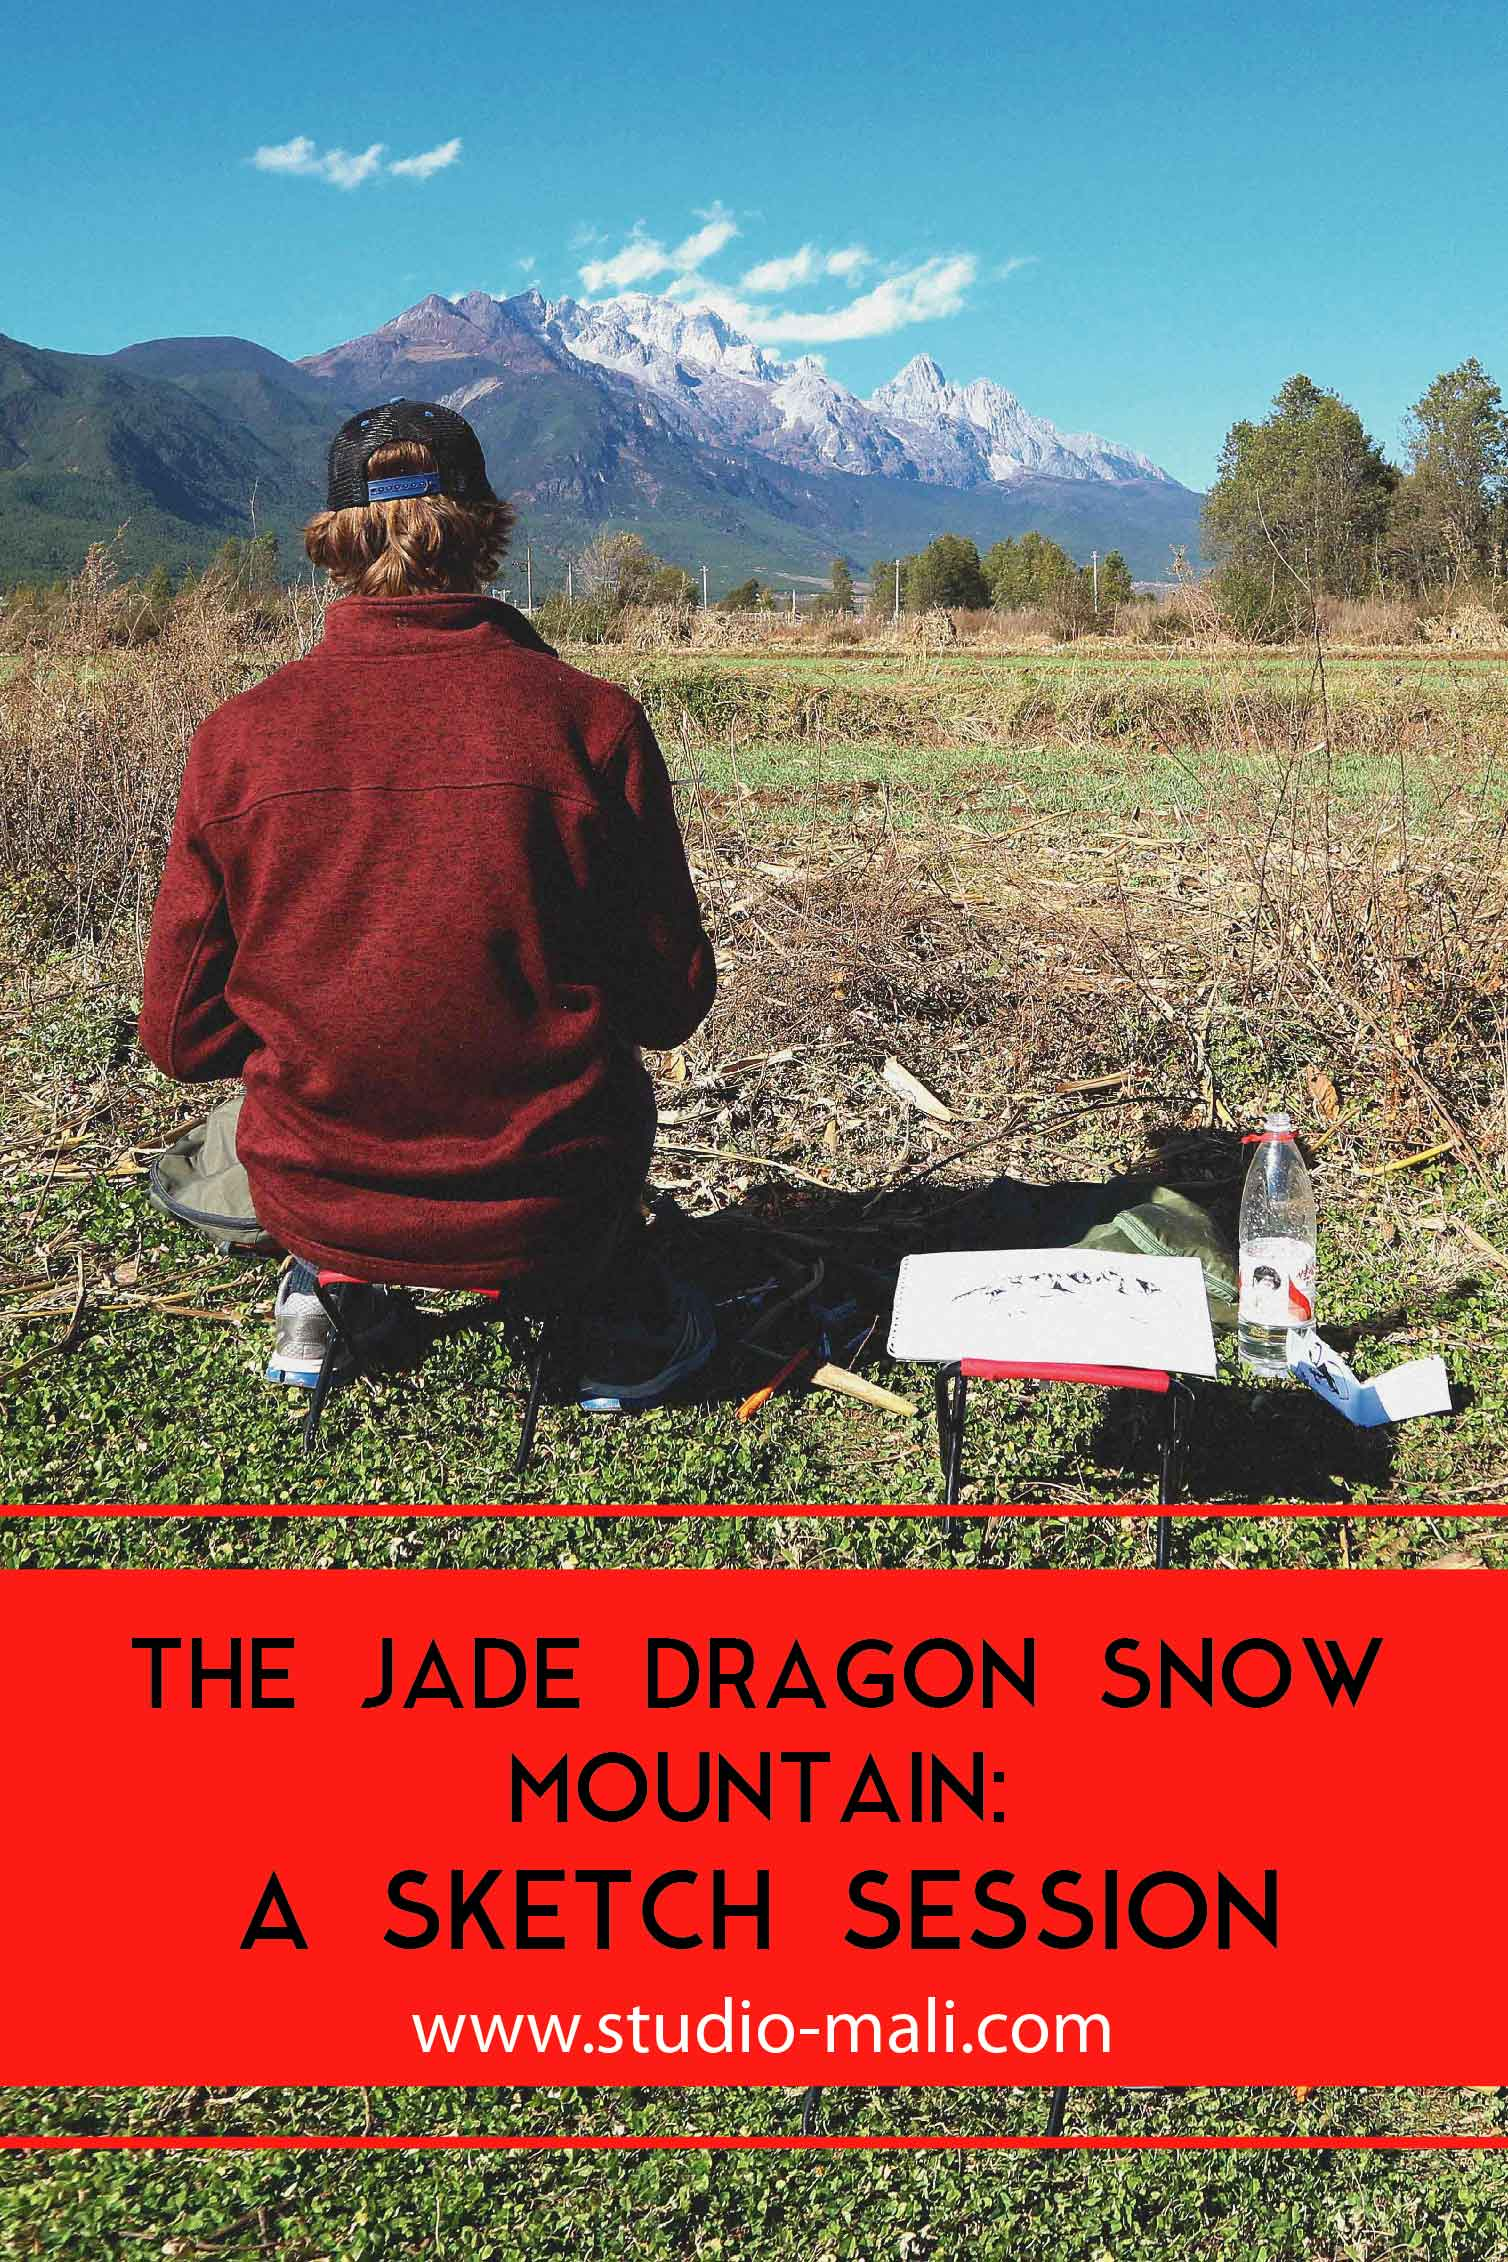 The Jade Dragon Snow Mountain: A Sketch Session